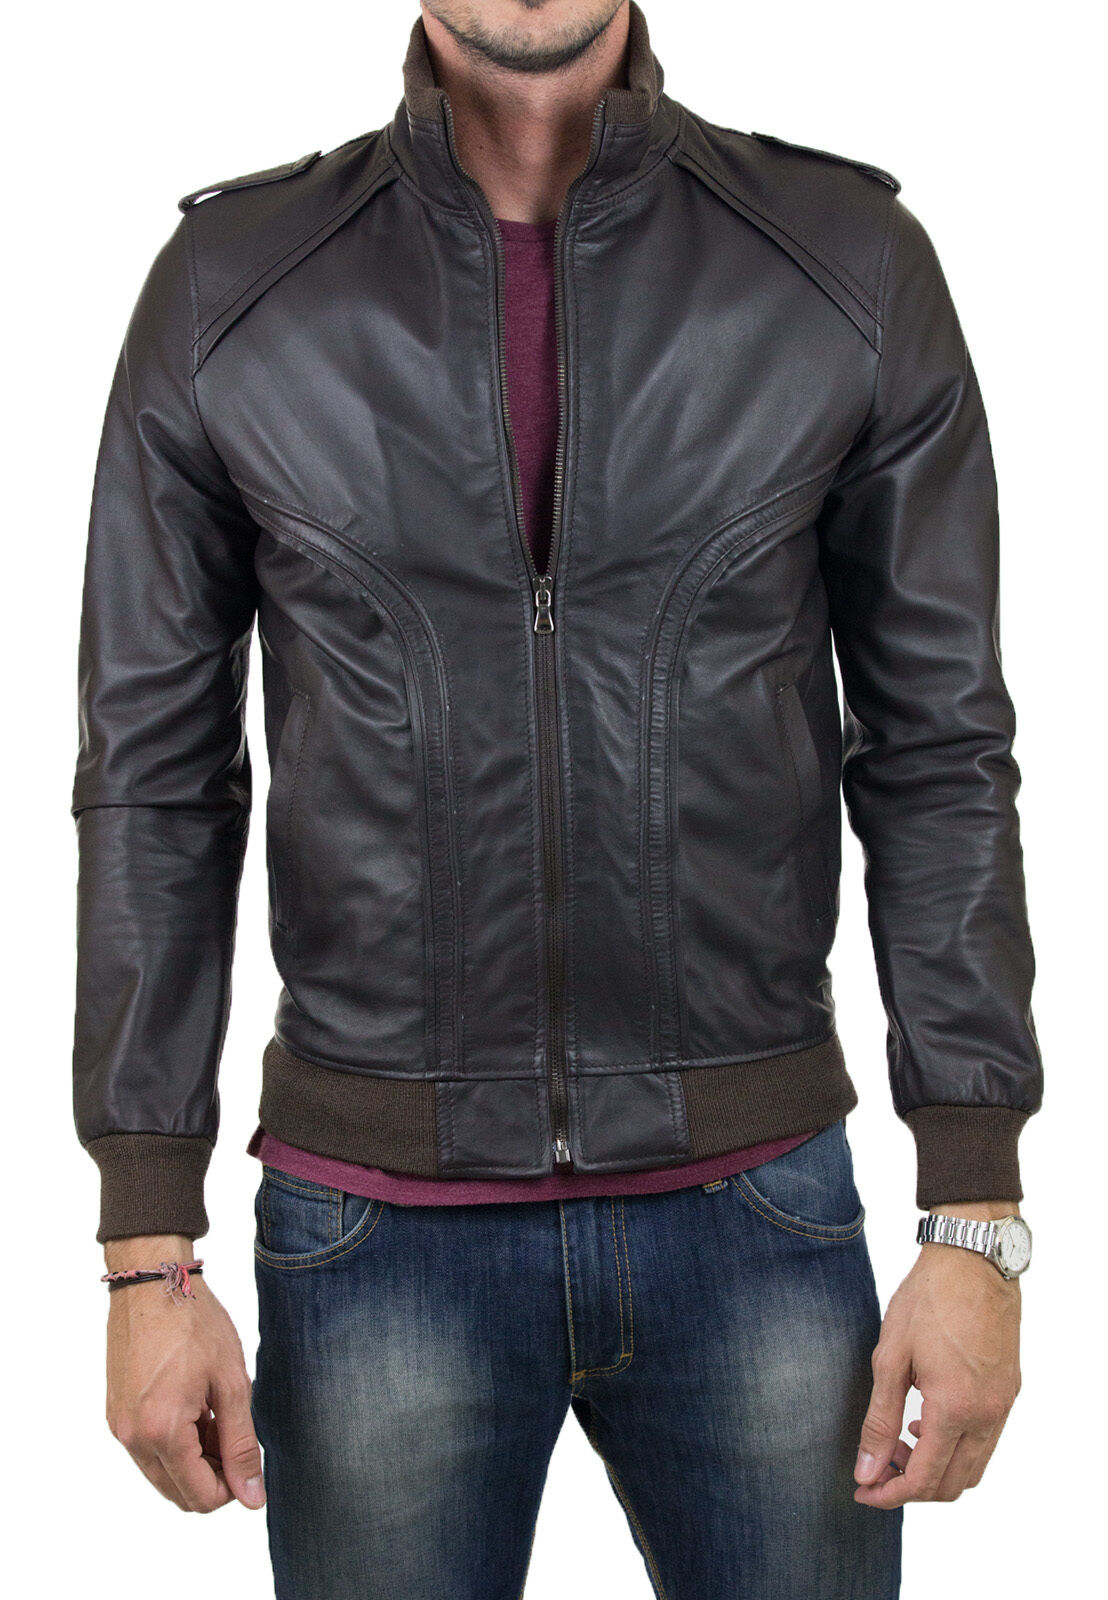 ★Giacca Giubbotto  Uomo in di PELLE 100%★   Giubbotto Leather Jacket Veste Homme Cuir Q4 fb9559